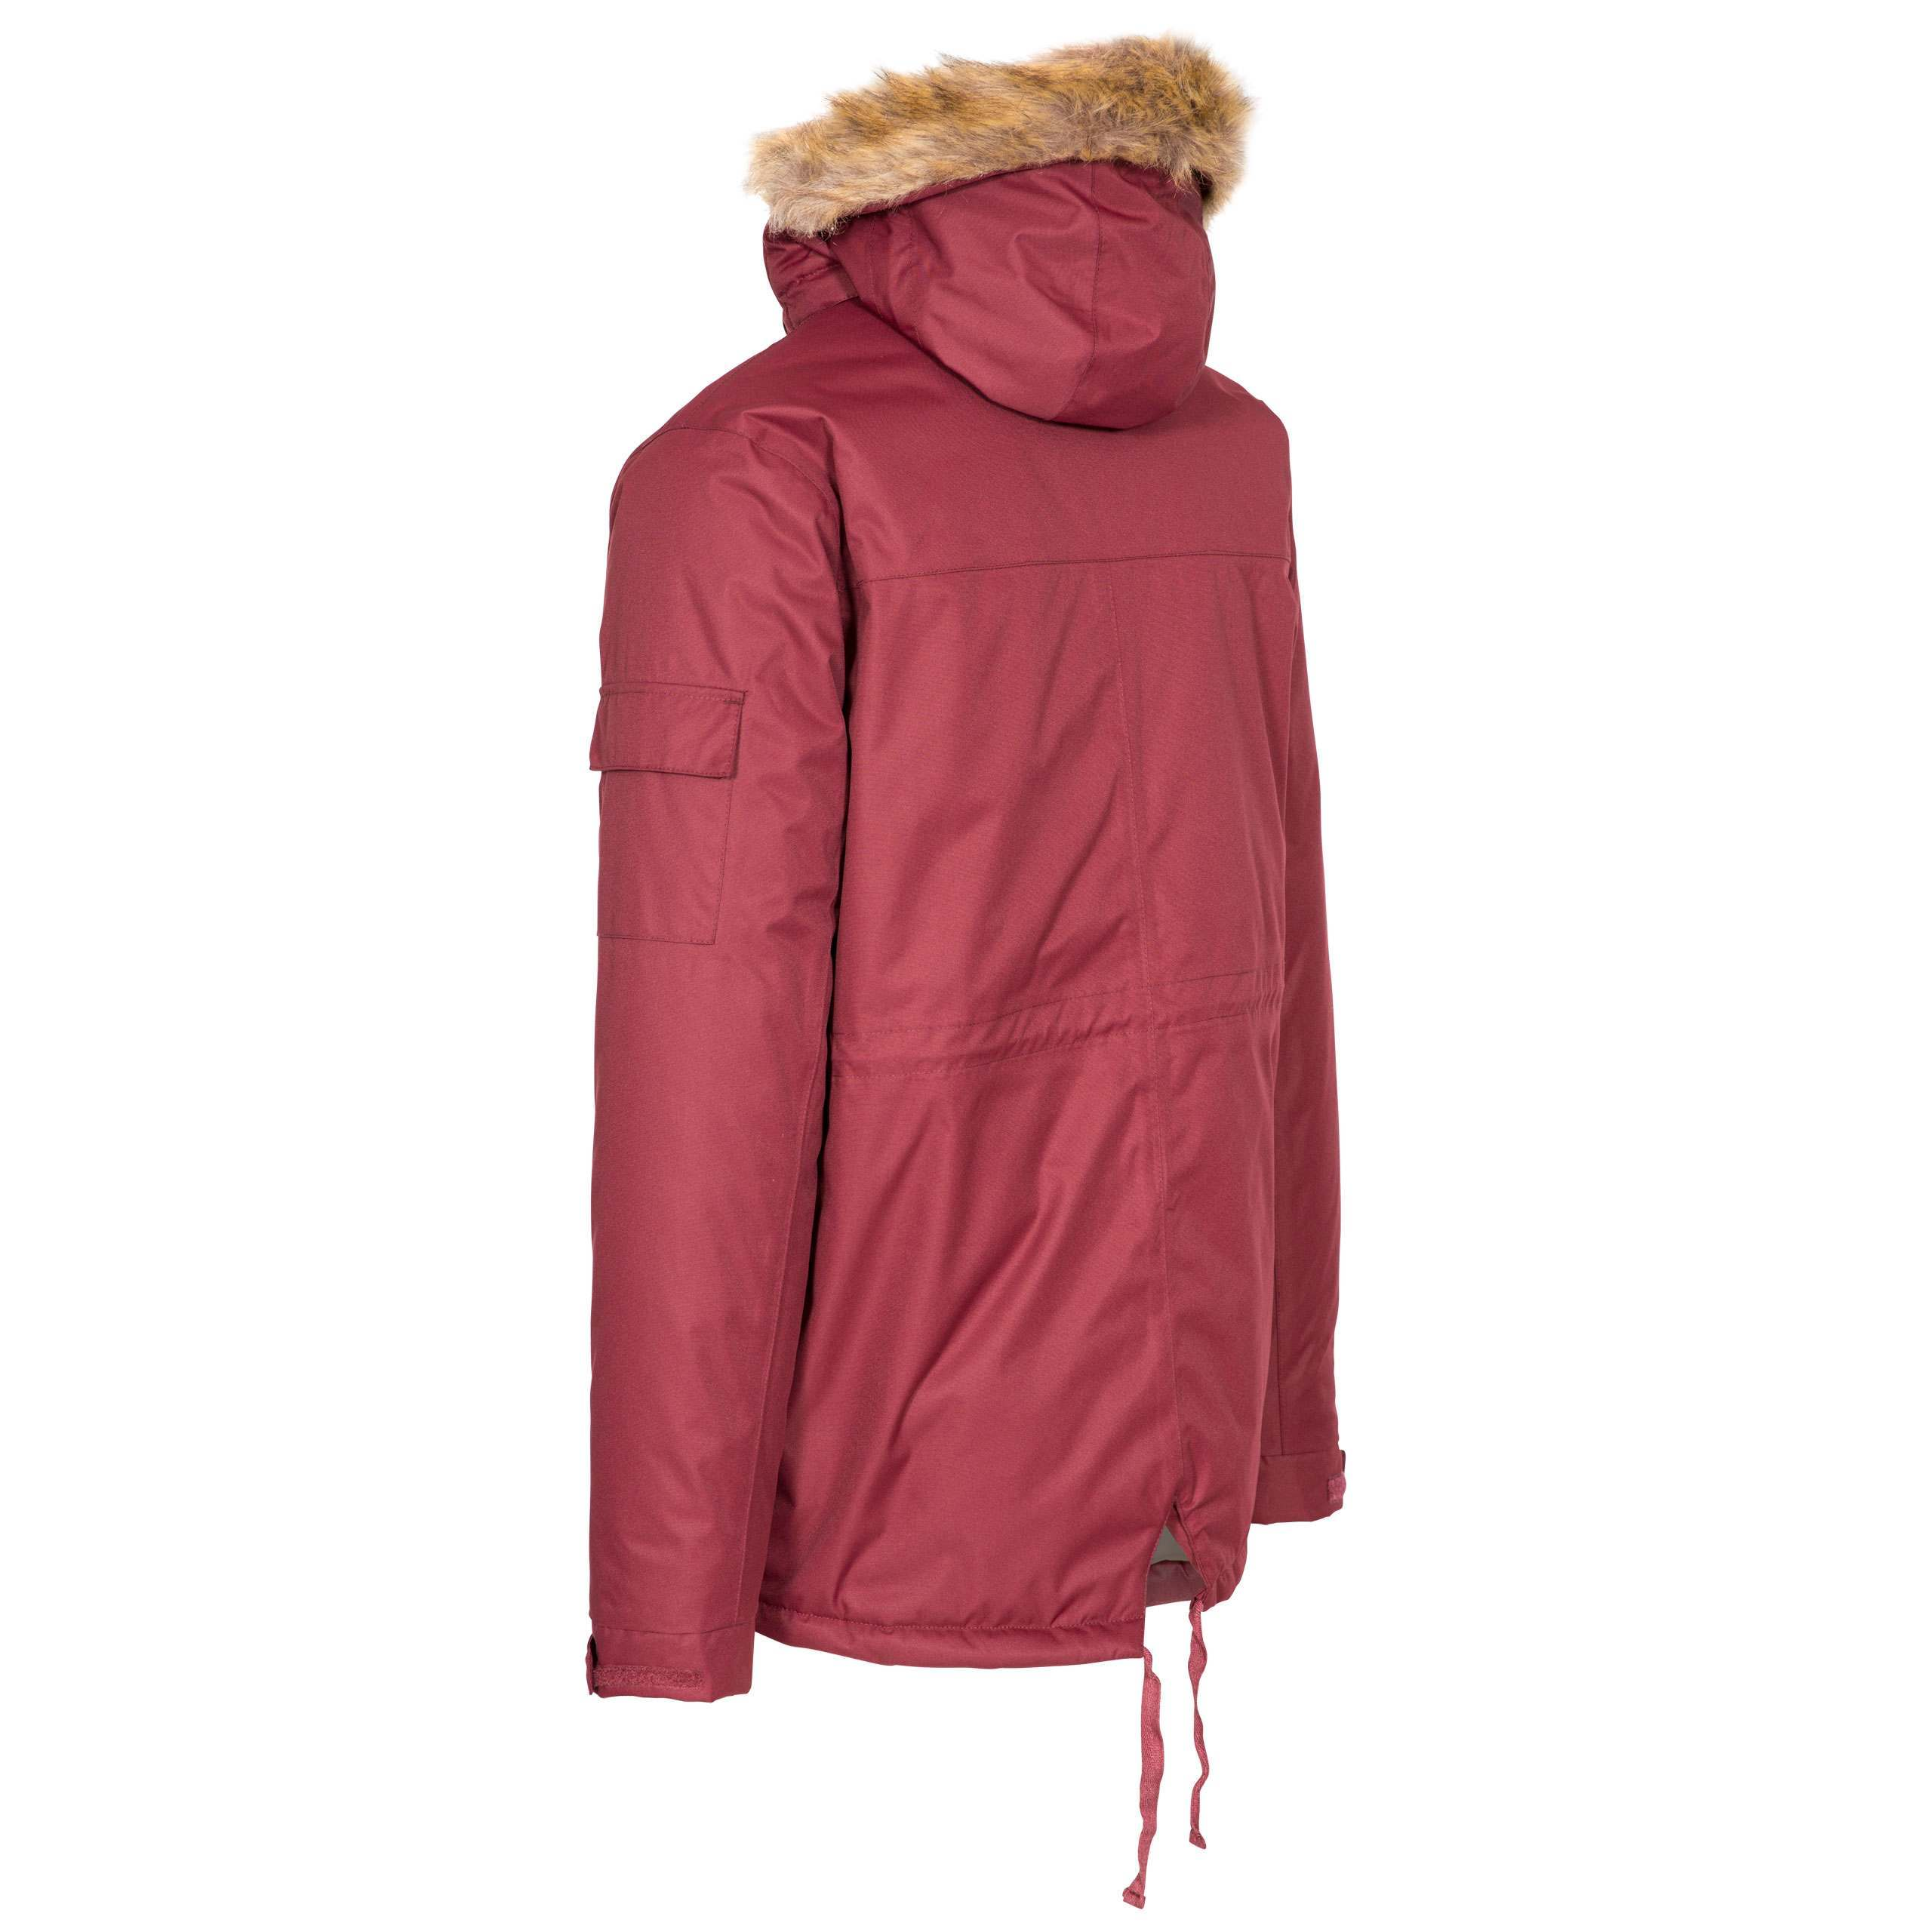 Trespass-Mens-Parka-Jacket-Winter-Waterproof-Coat-with-Fleece-amp-Hood thumbnail 18